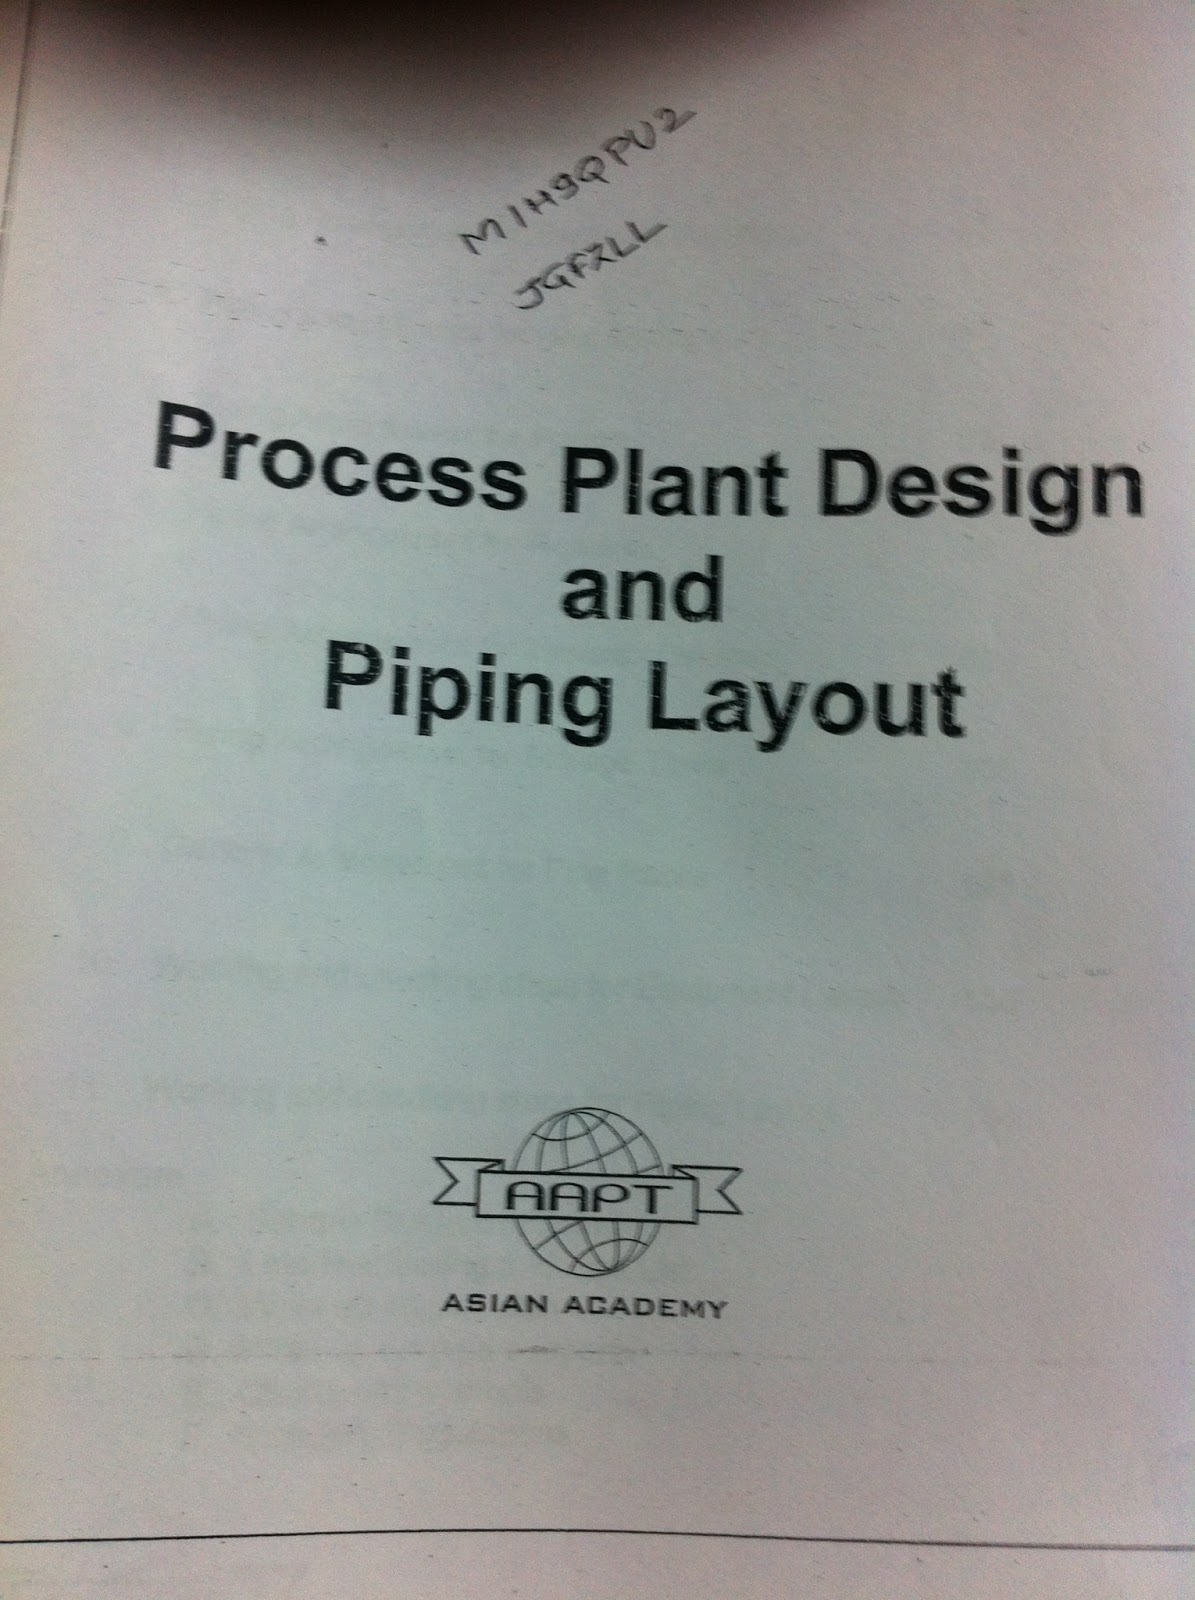 Pg Diploma In Piping Designmit Pune An Insiders Review Mit Layout Handbook Pictures A Few Words Of Wisdom About Their Notes